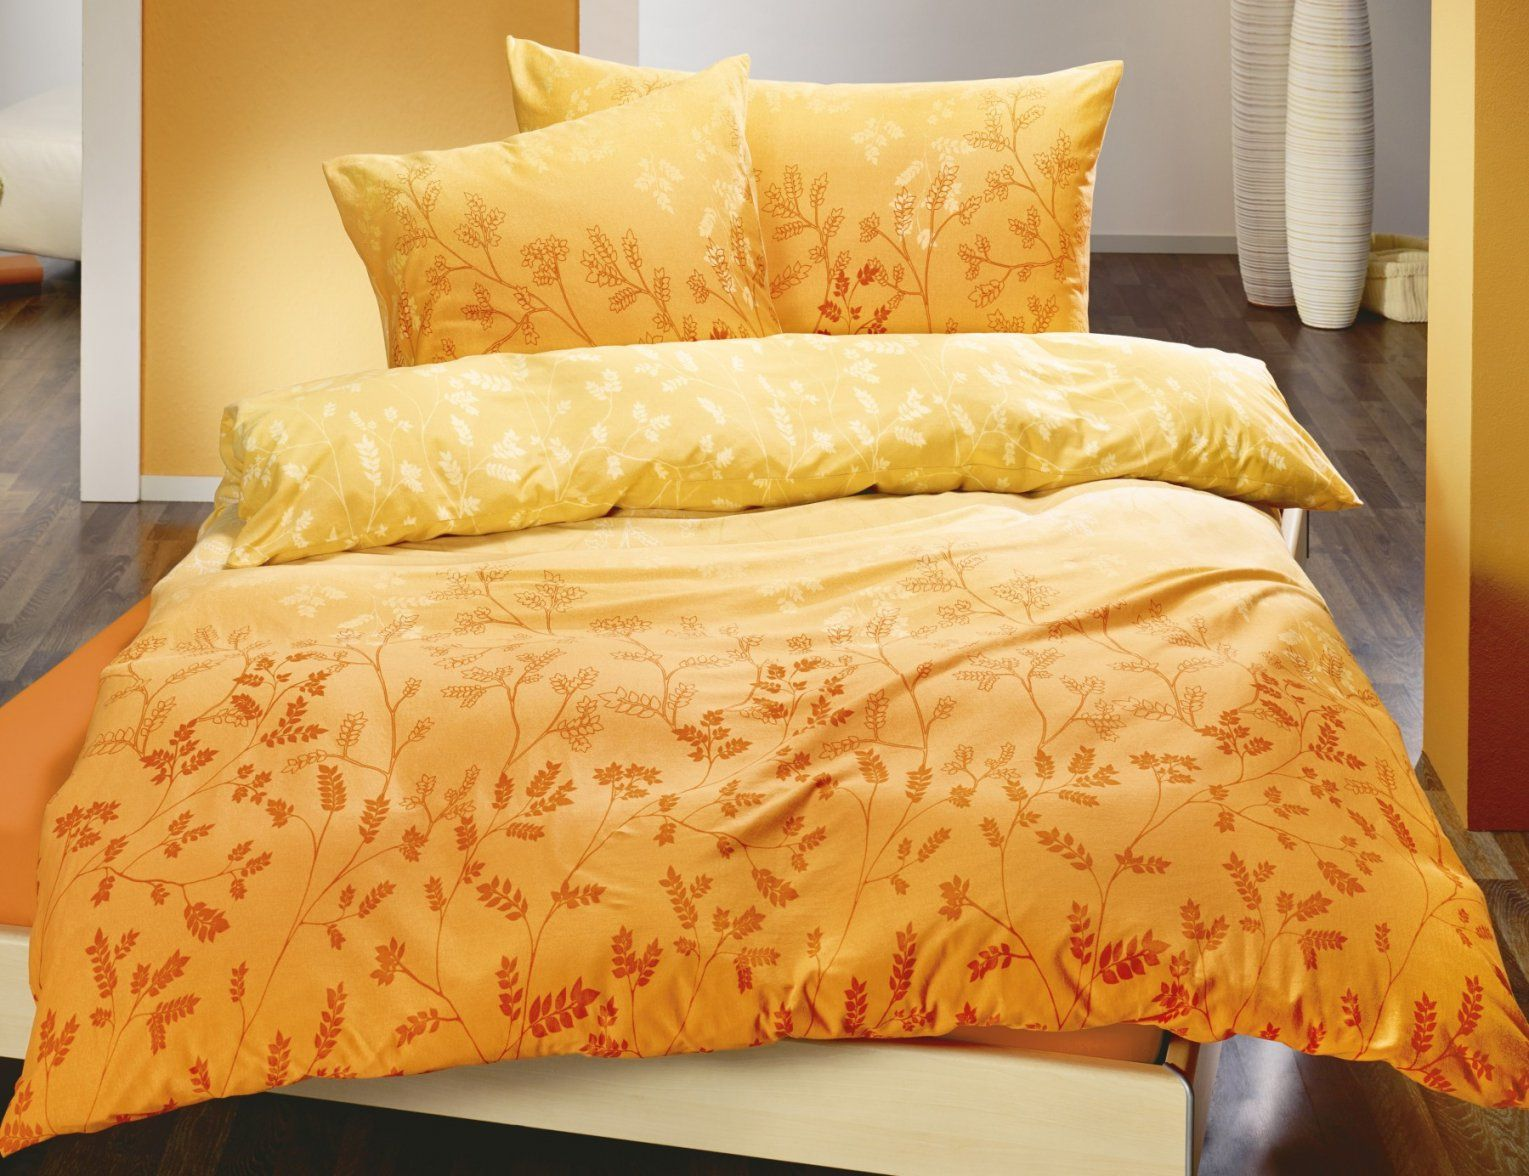 Search Results For Comforter Sets  Rural King  Dibinekadar Decoration von Biber Bettwäsche Gelb Bild